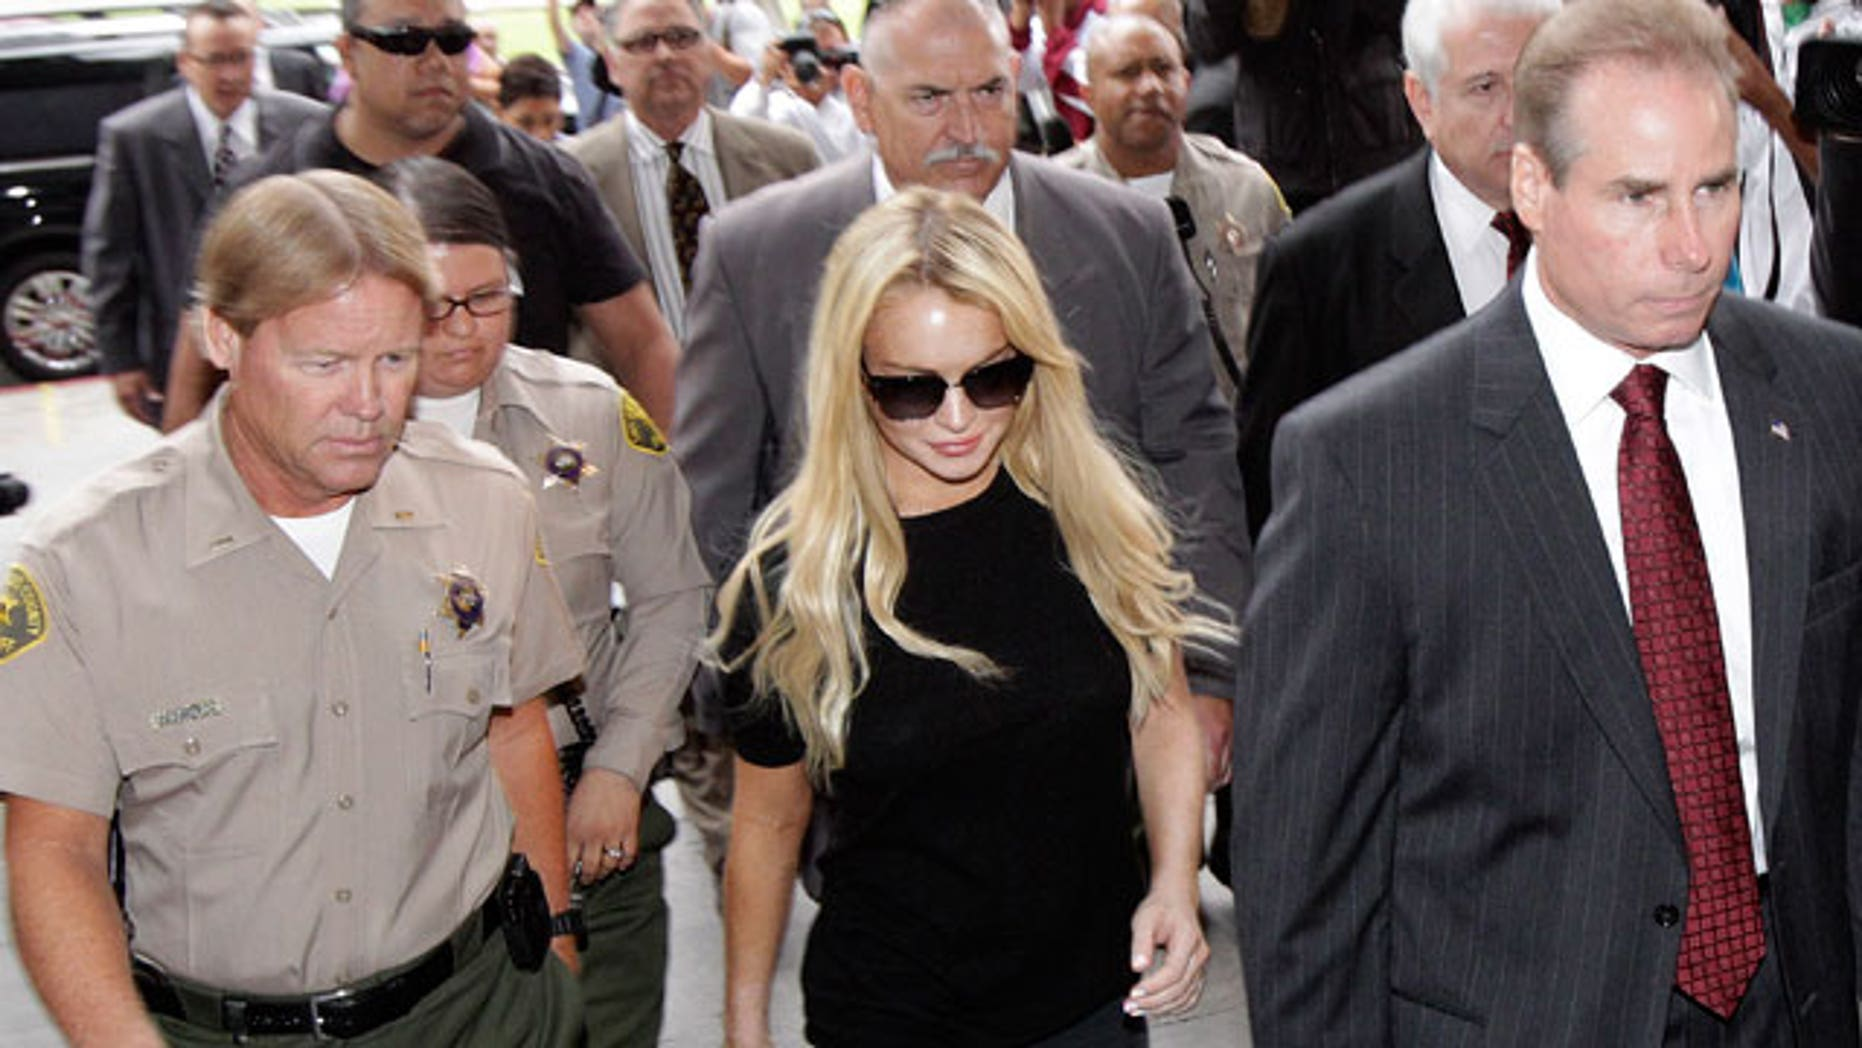 July 6: Lindsay Lohan arrives for a probation hearing in Los Angeles.